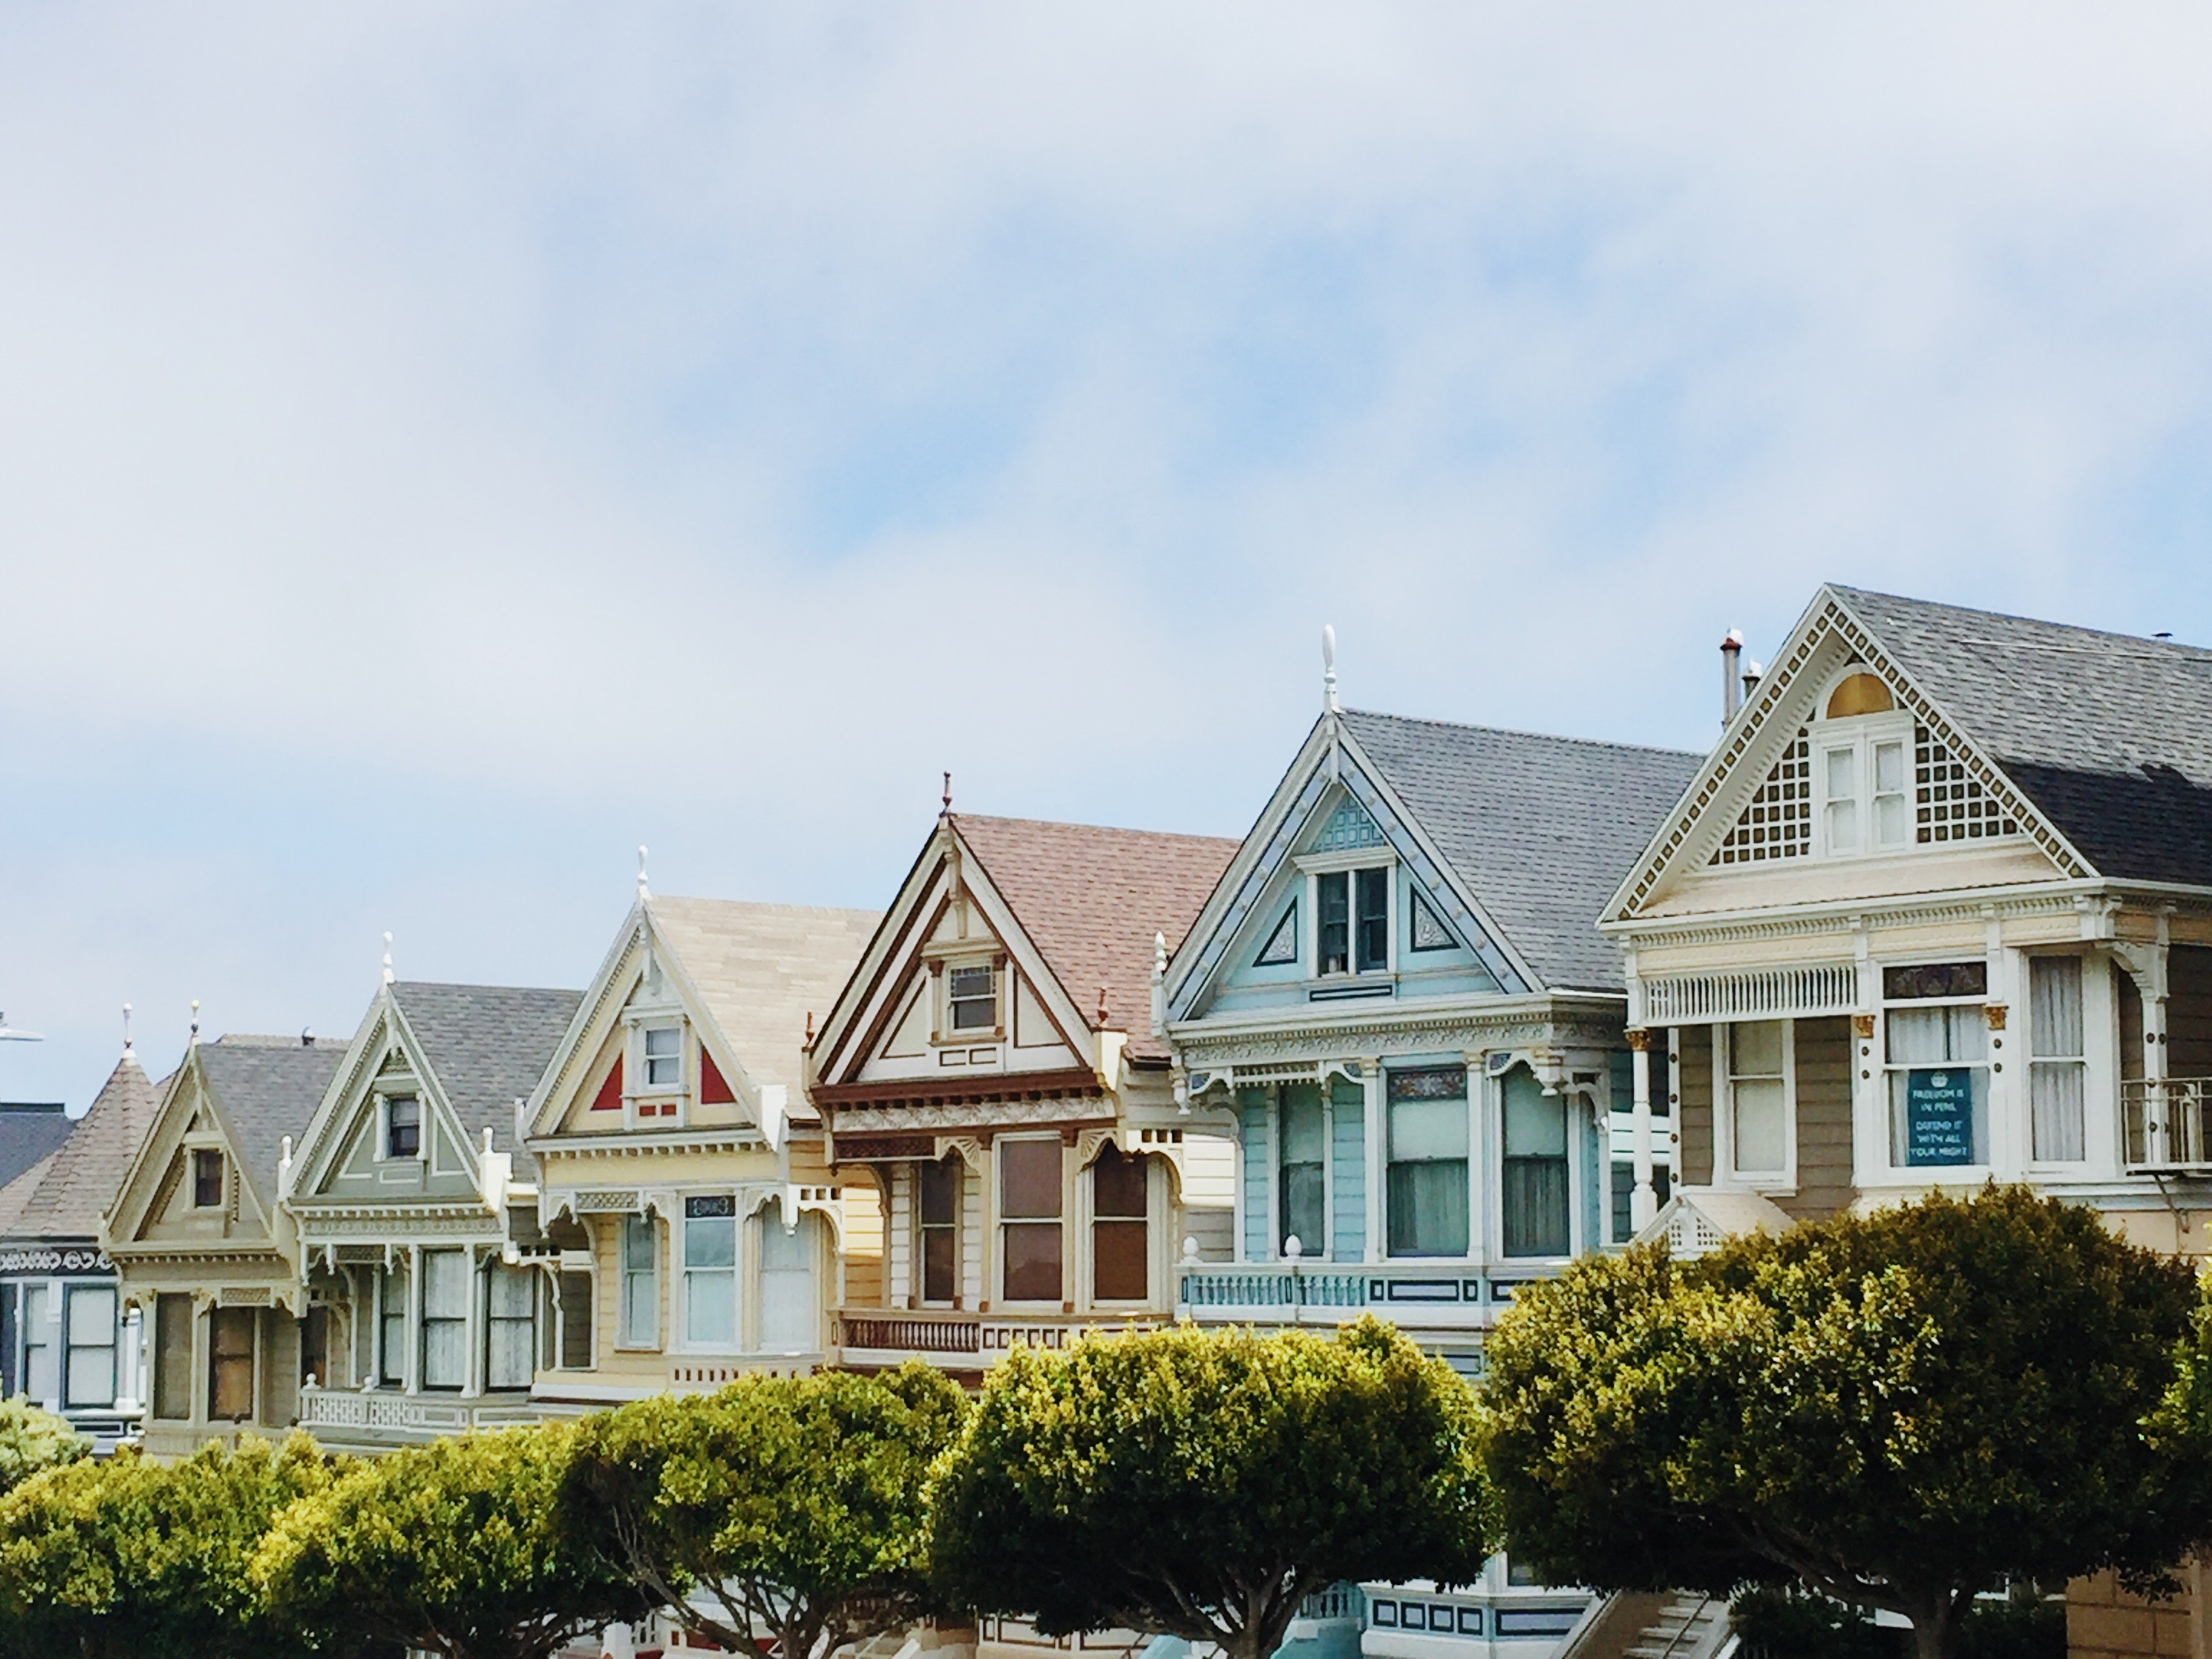 5 Reasons to Start House Hunting in Late Summer